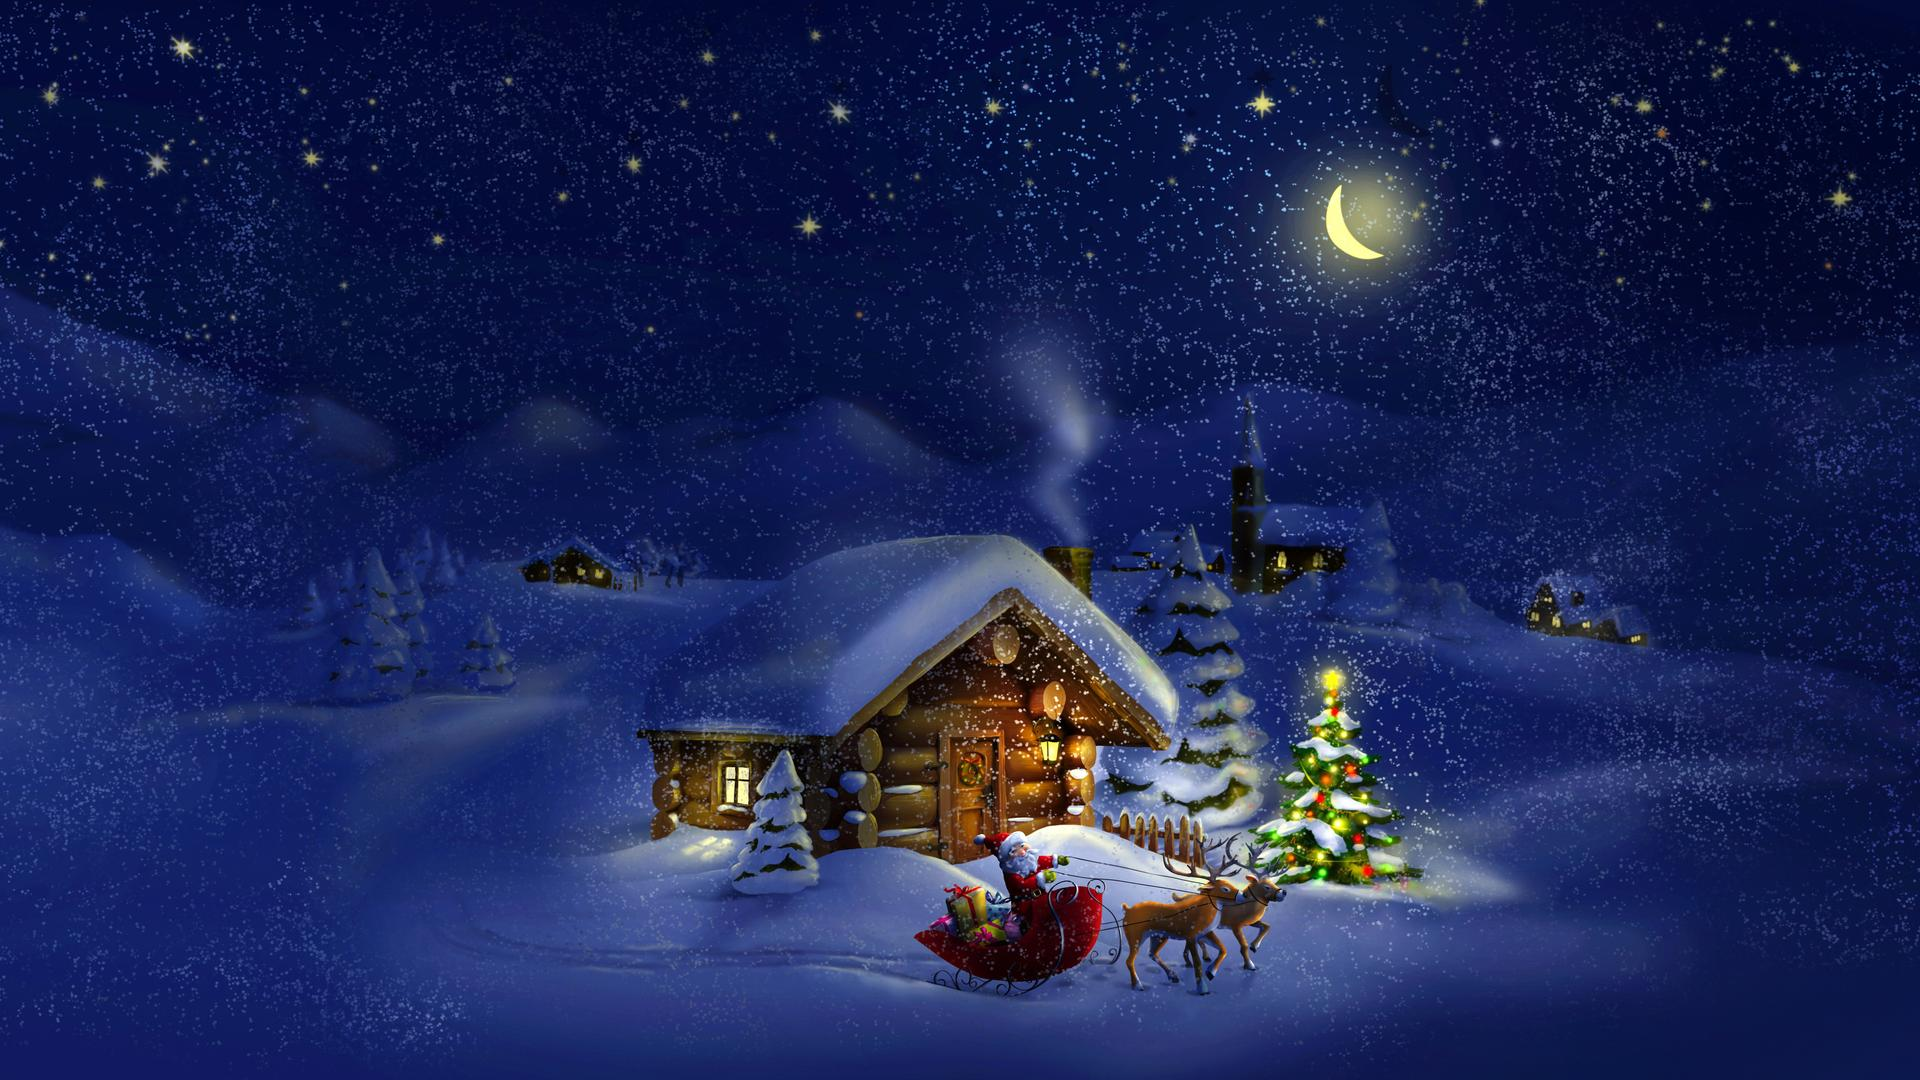 Beautiful Magic Christmas Night Village Waiting For